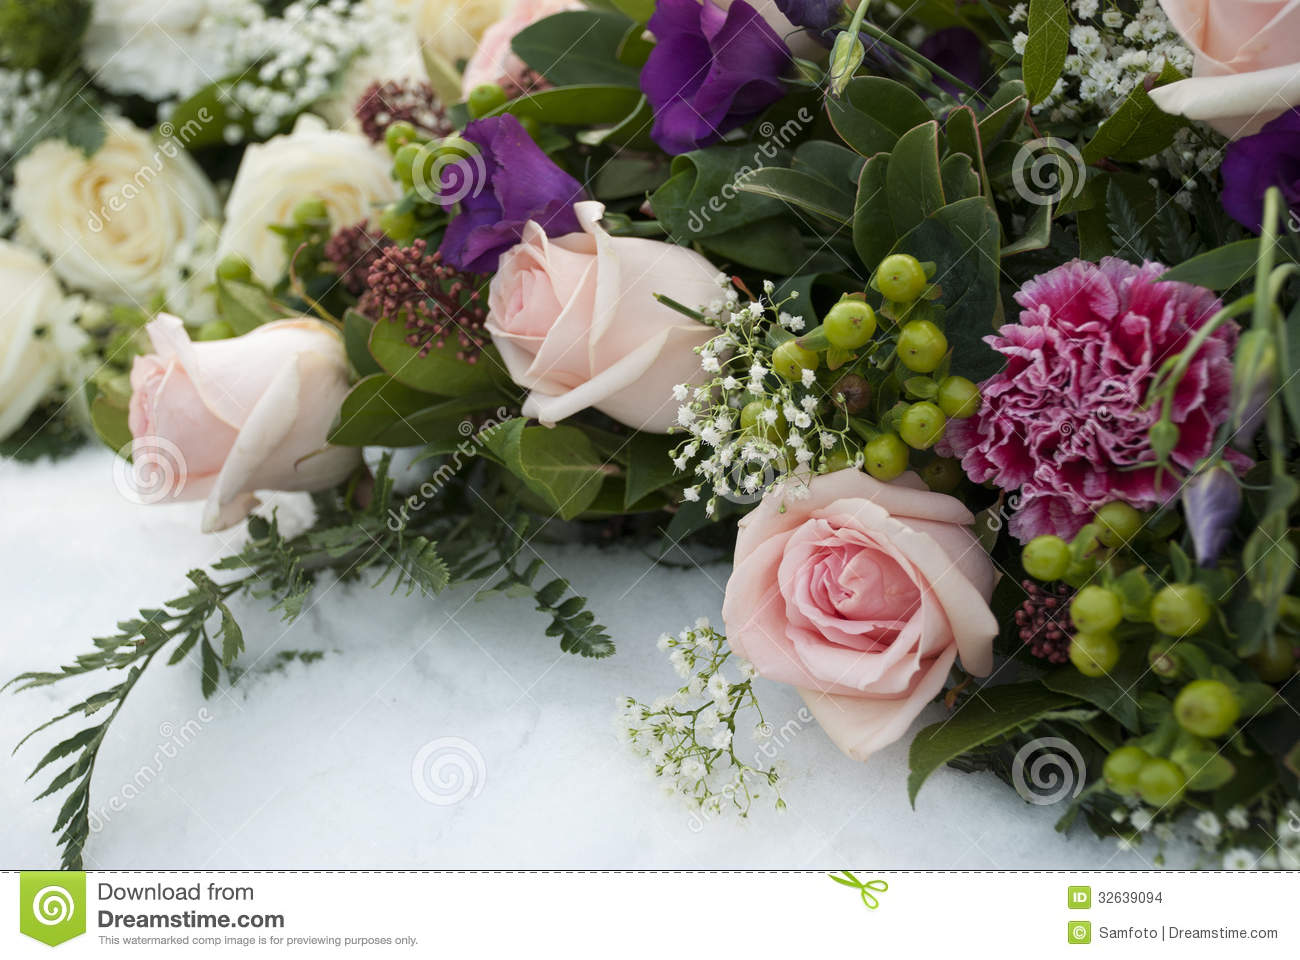 Funeral Flowers In The Snow On A Cemetery Stock Photo Image Of